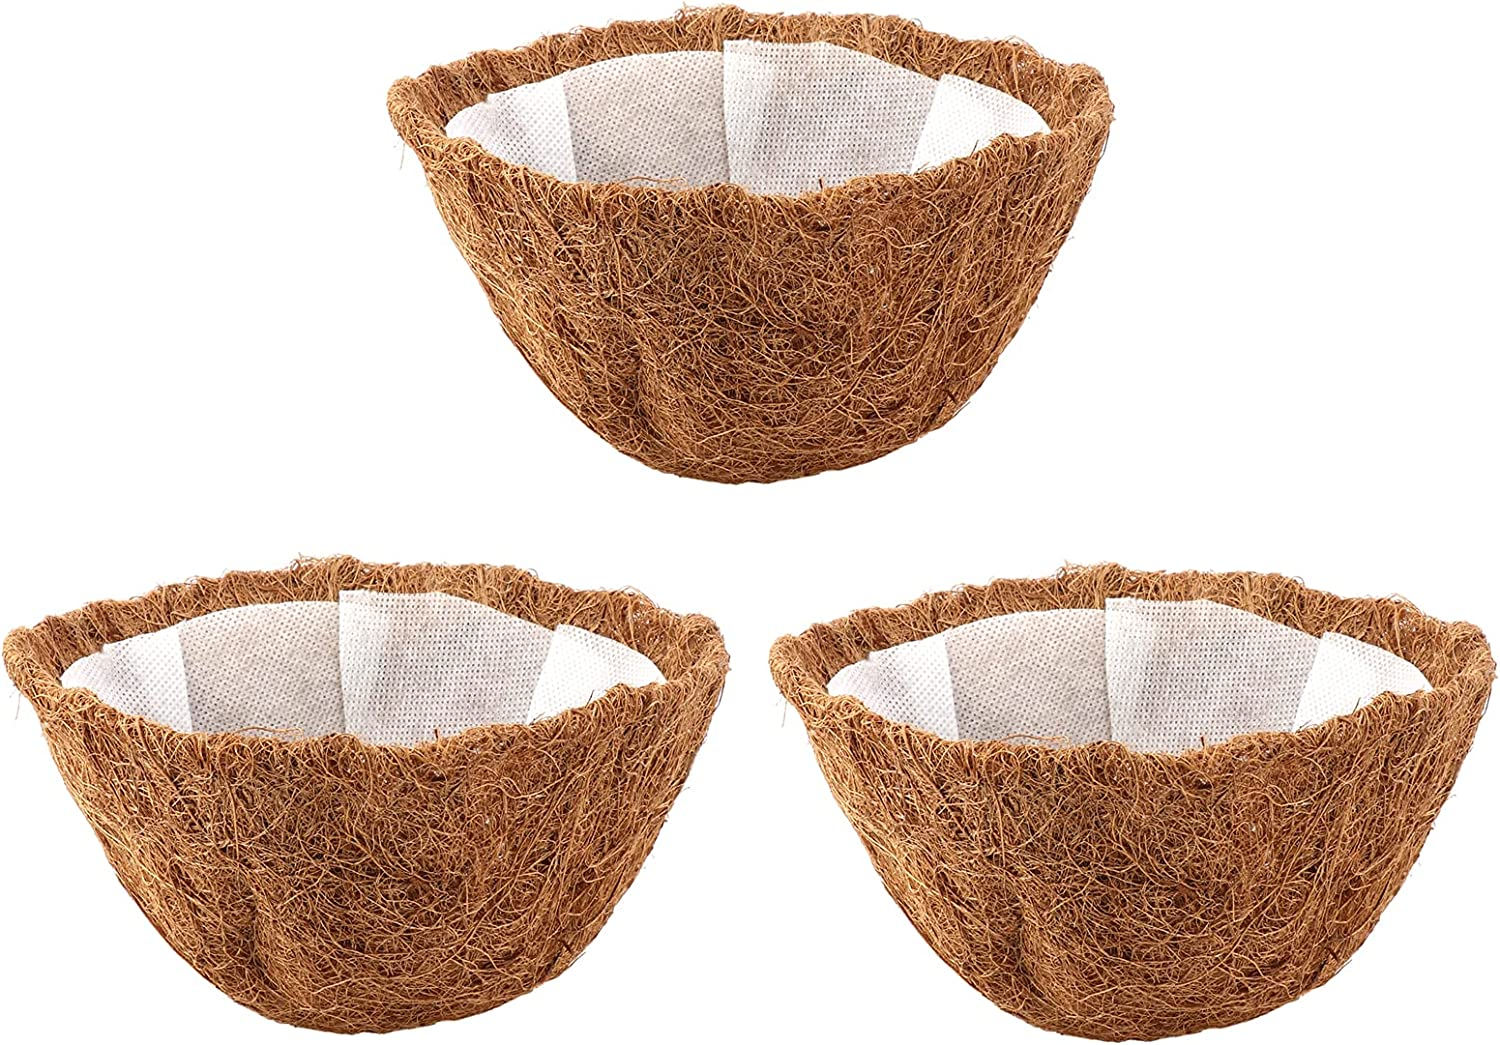 TITA-DONG 10in Natural Coco Liner wit Recommended Fiber Pcs Time sale 3 Coconut